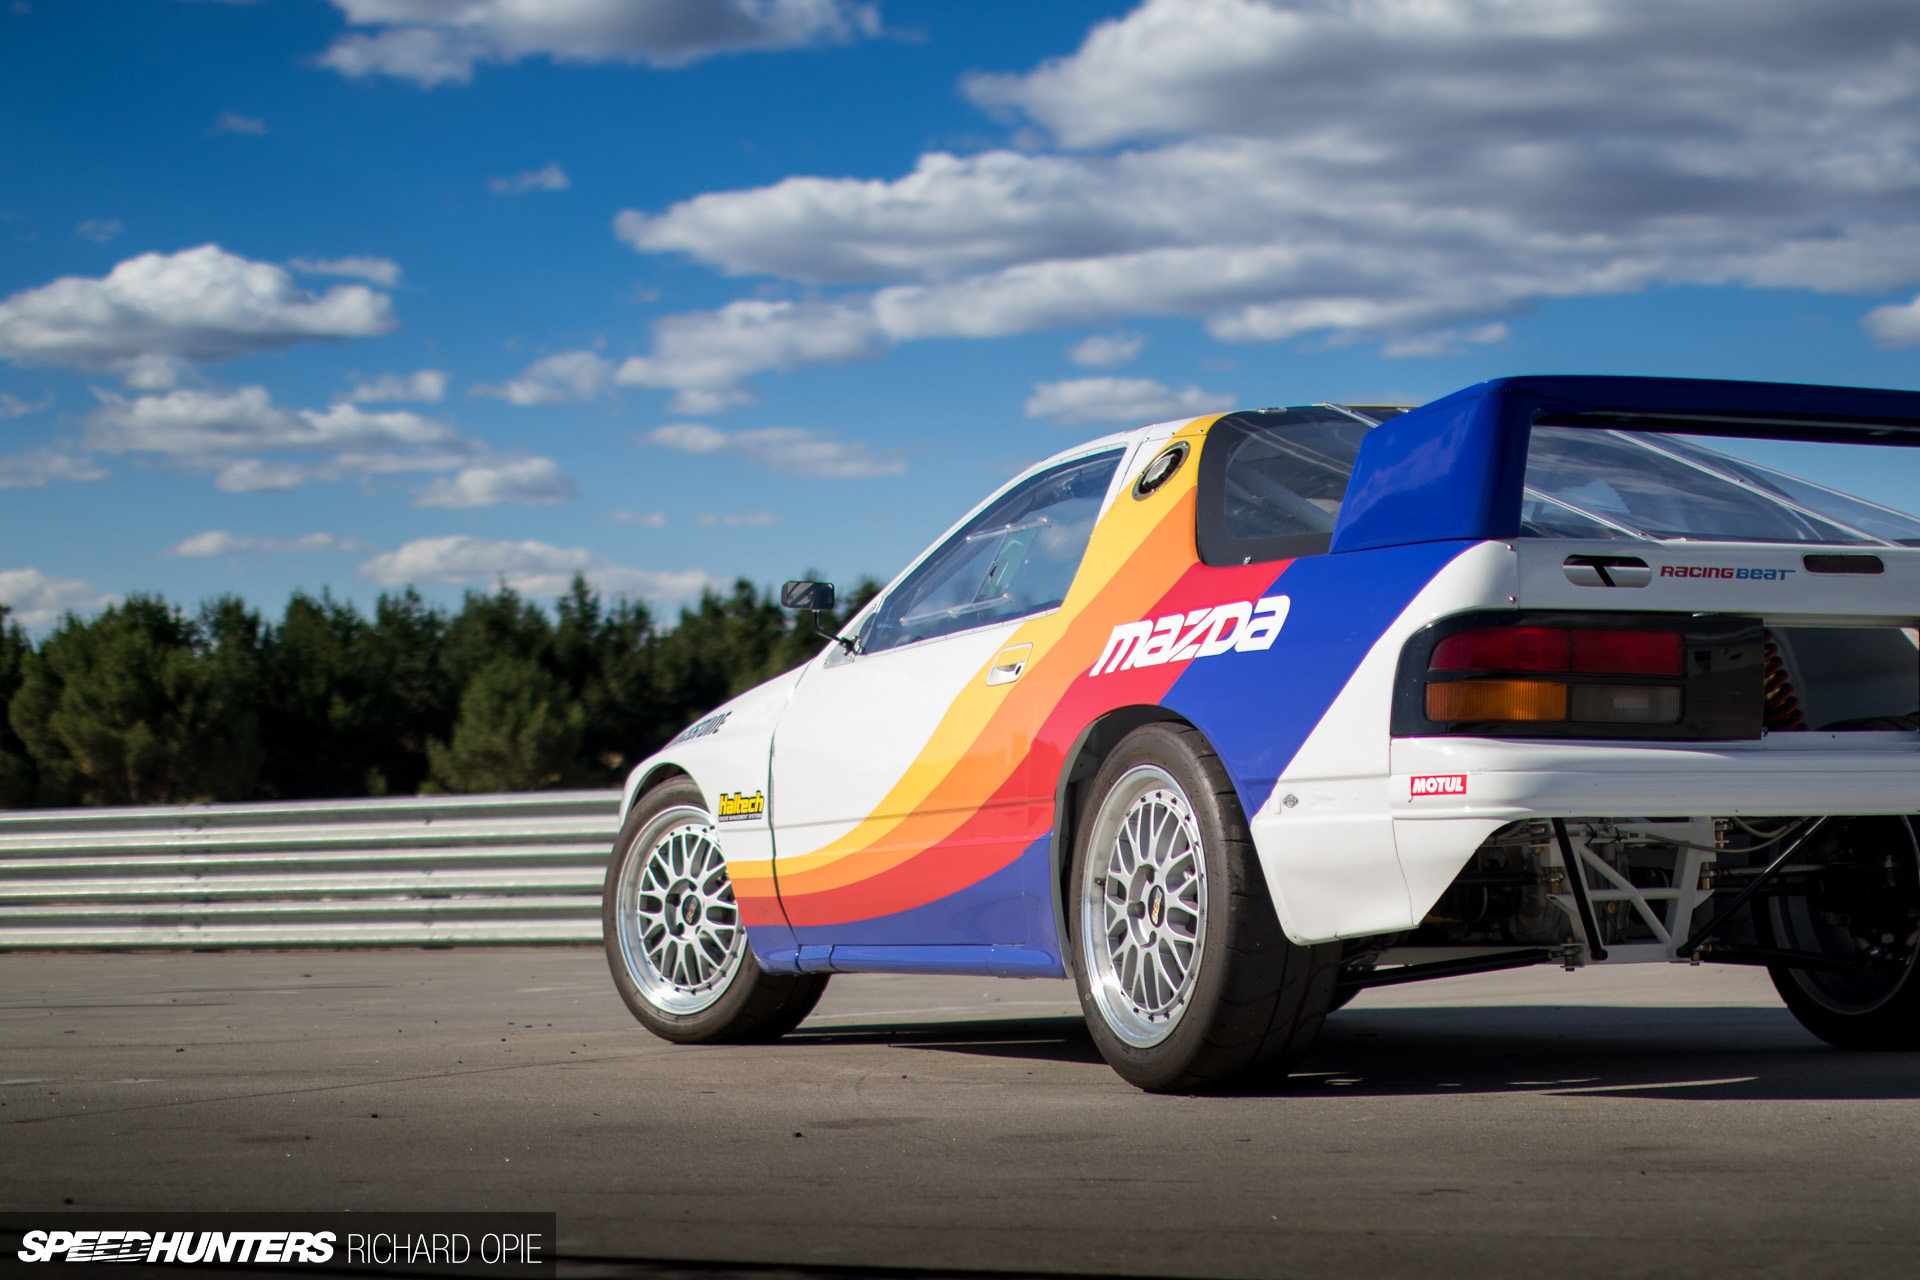 Resurrection: The Pikes Peak 20B 4WD RX-7